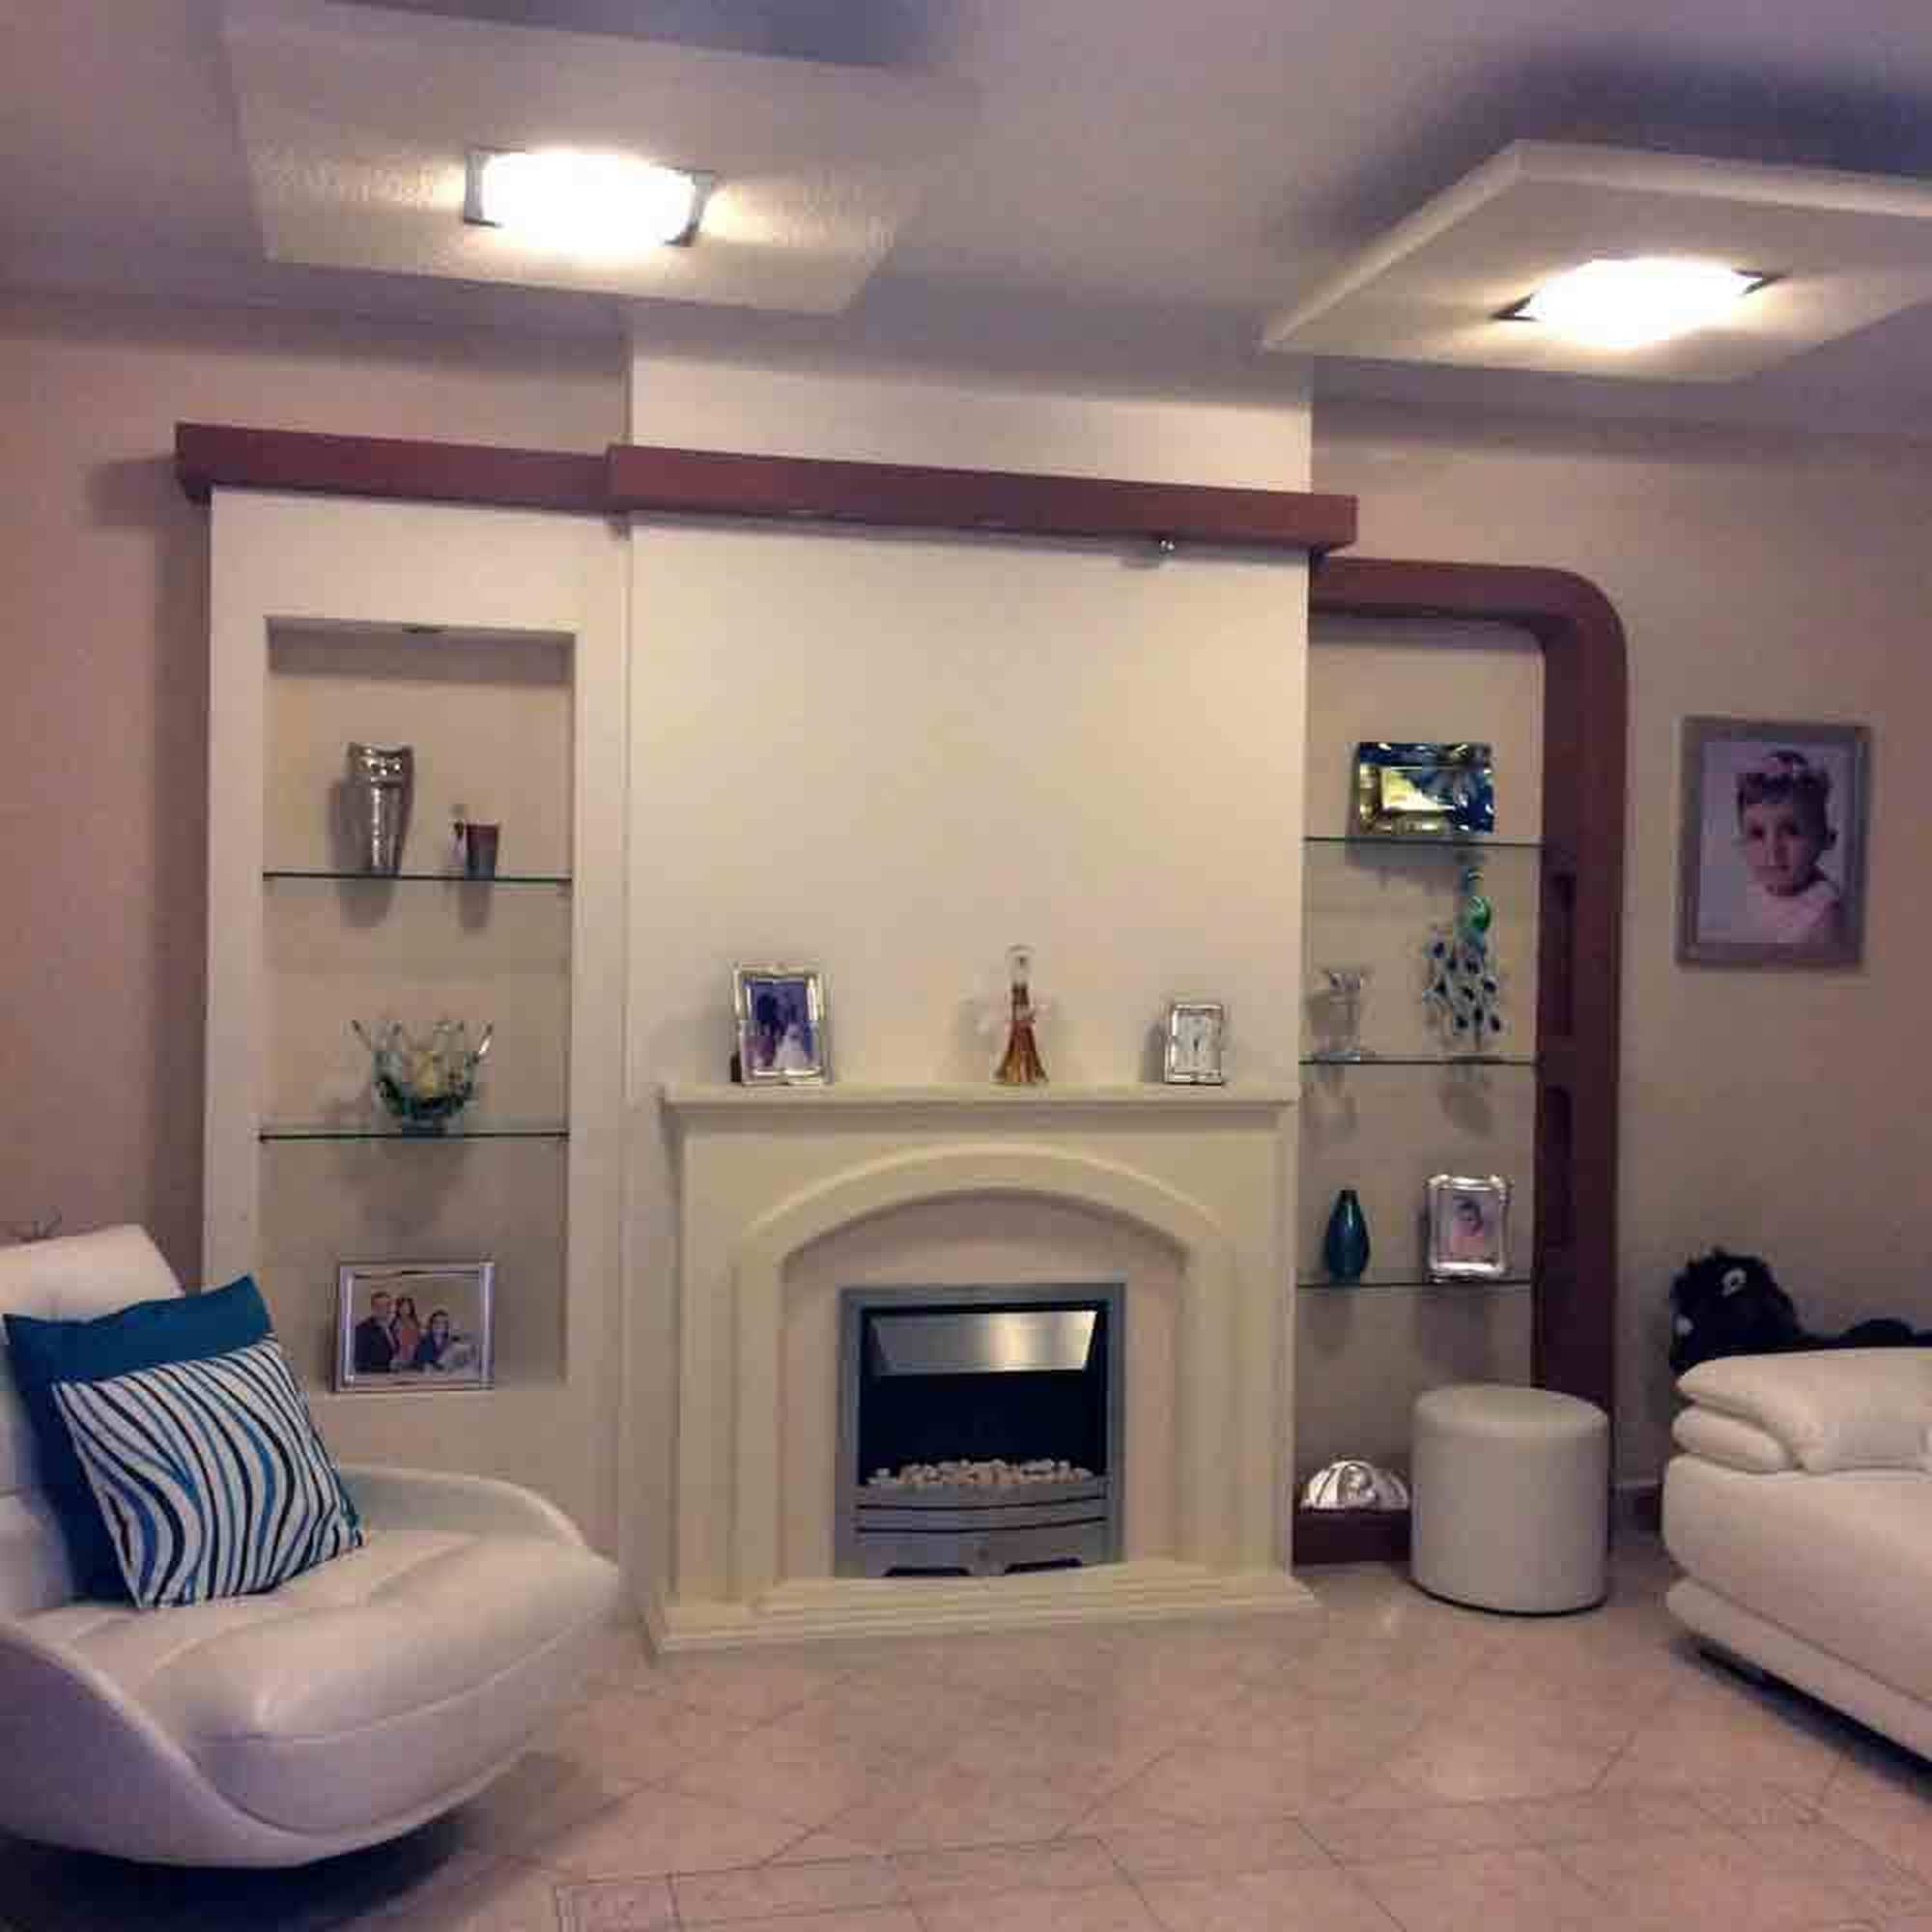 Apartment Or Duplex For Rent: Highly Finished Solitary Duplex Maisonette